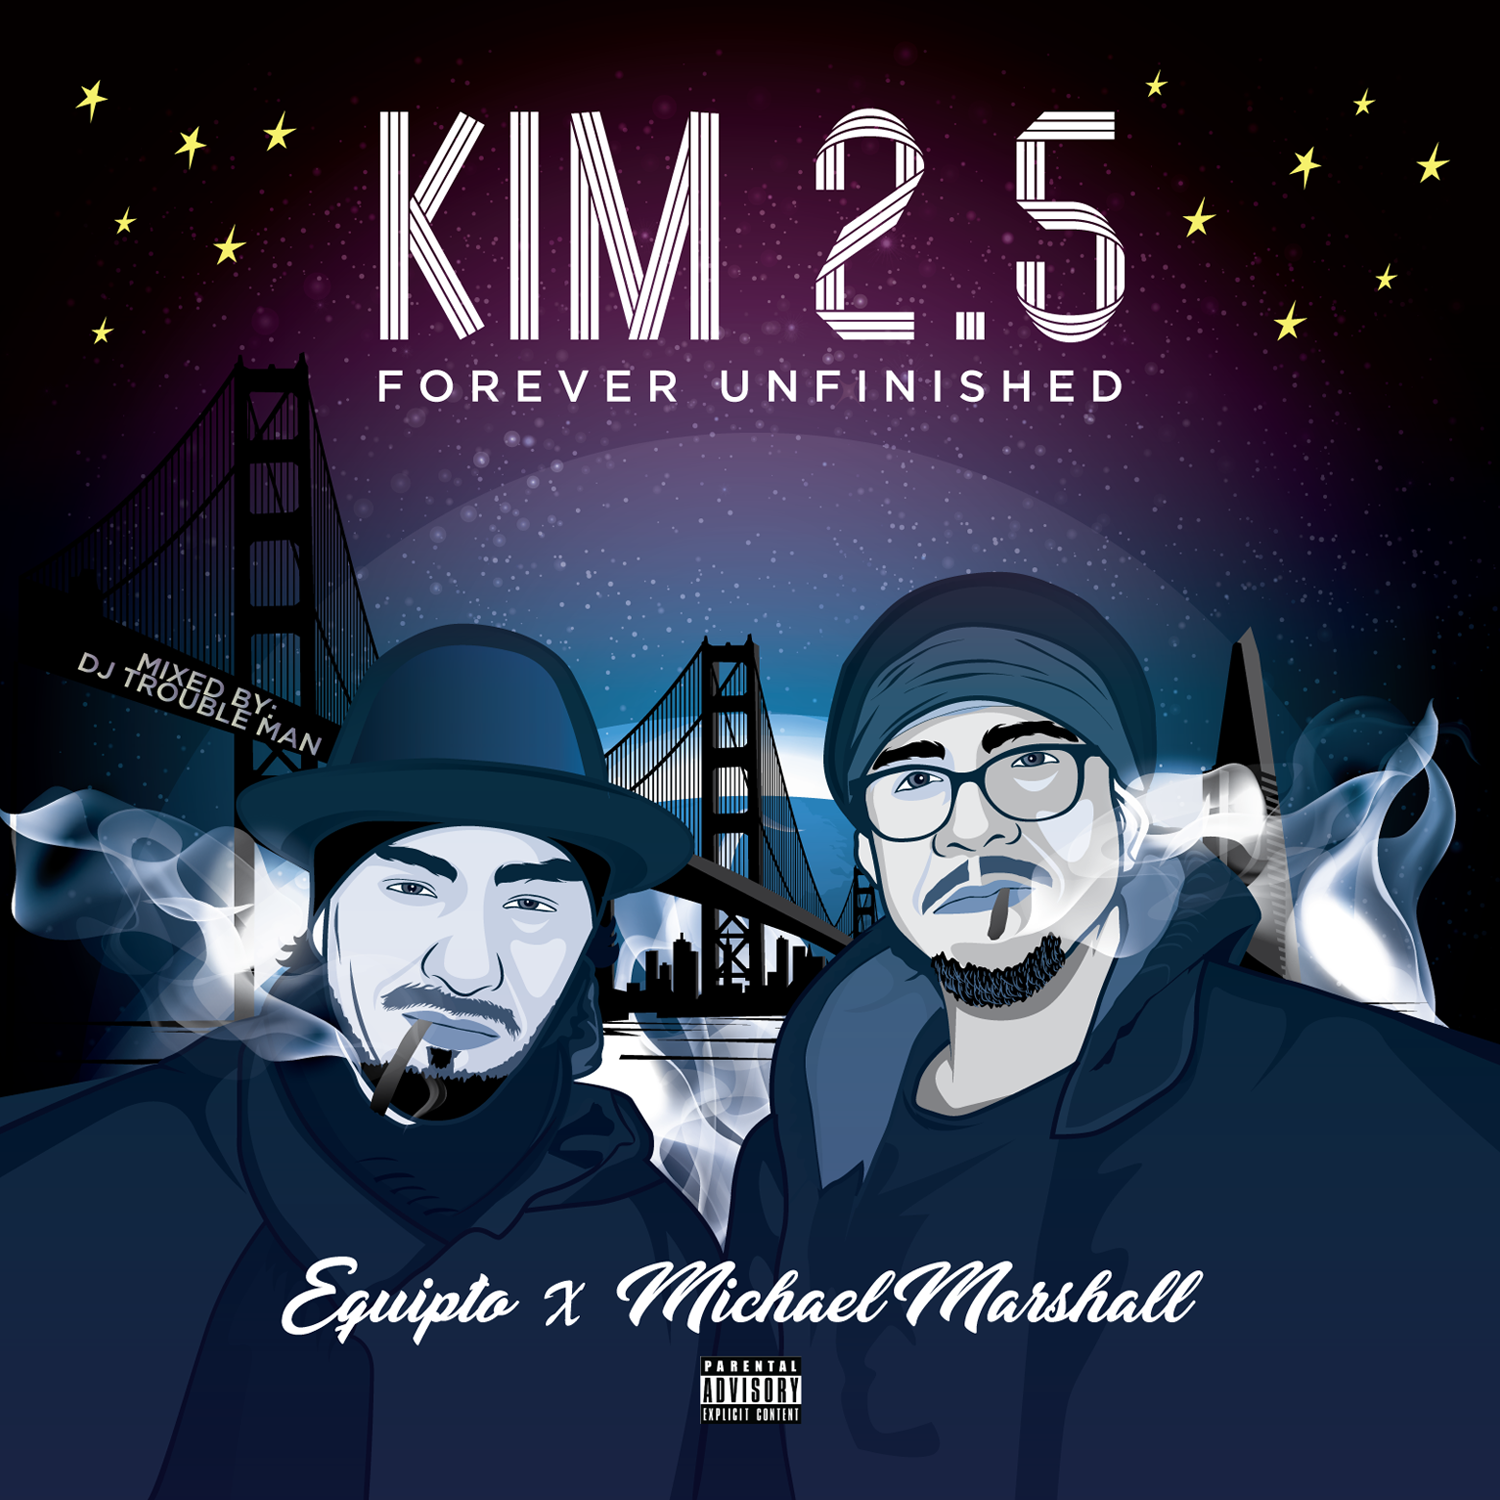 michael-marshall-equipto-kim-25-forever-unfinished-cover-wbleed.png